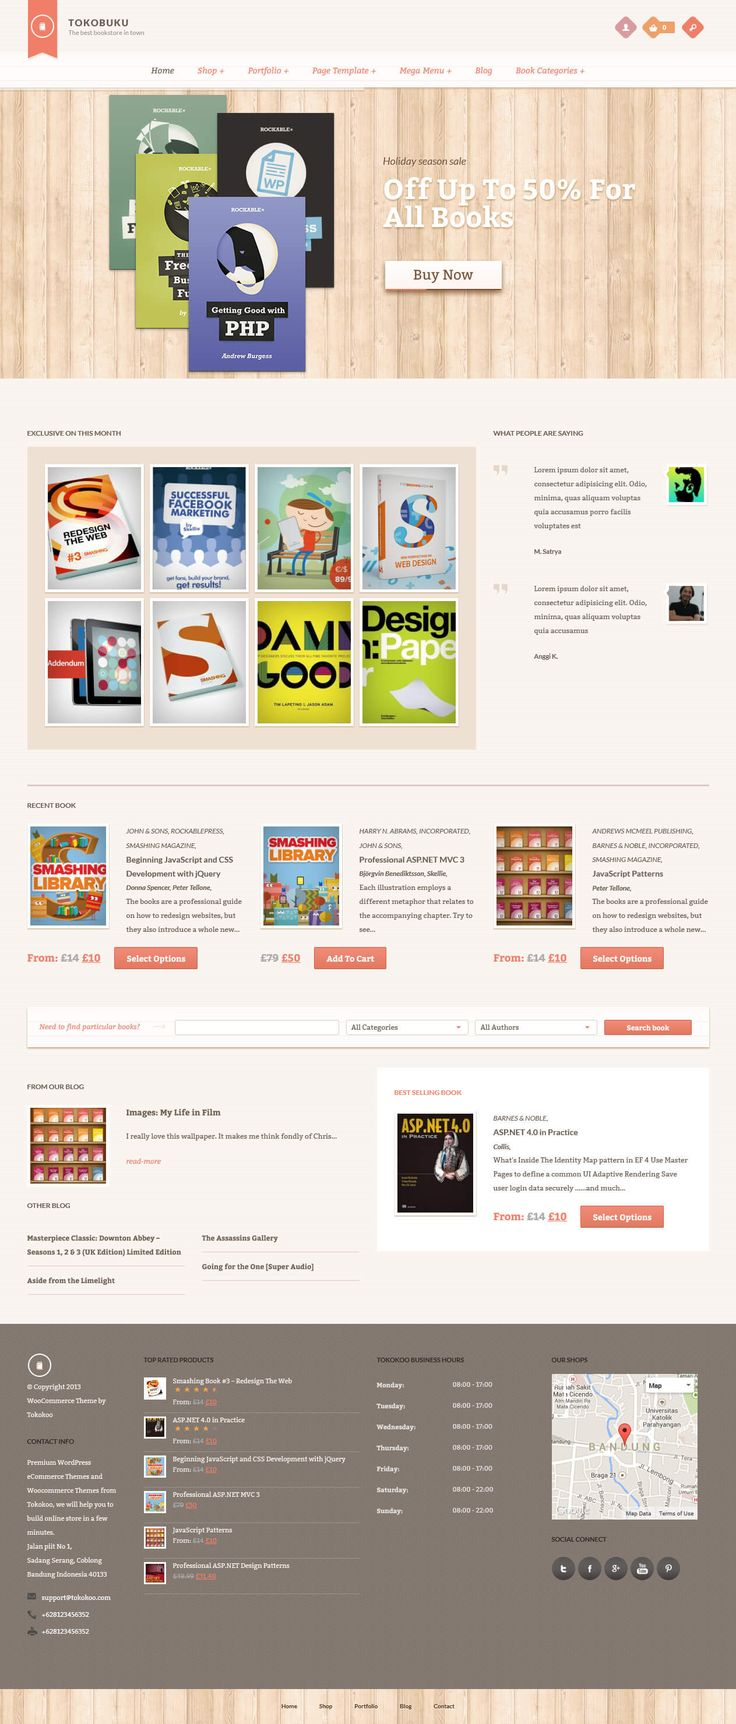 RaakBookoo - WordPress Theme for Authors, eBooks, Digital Downloads Click the link to DEMO | DOWNLOAD NOW